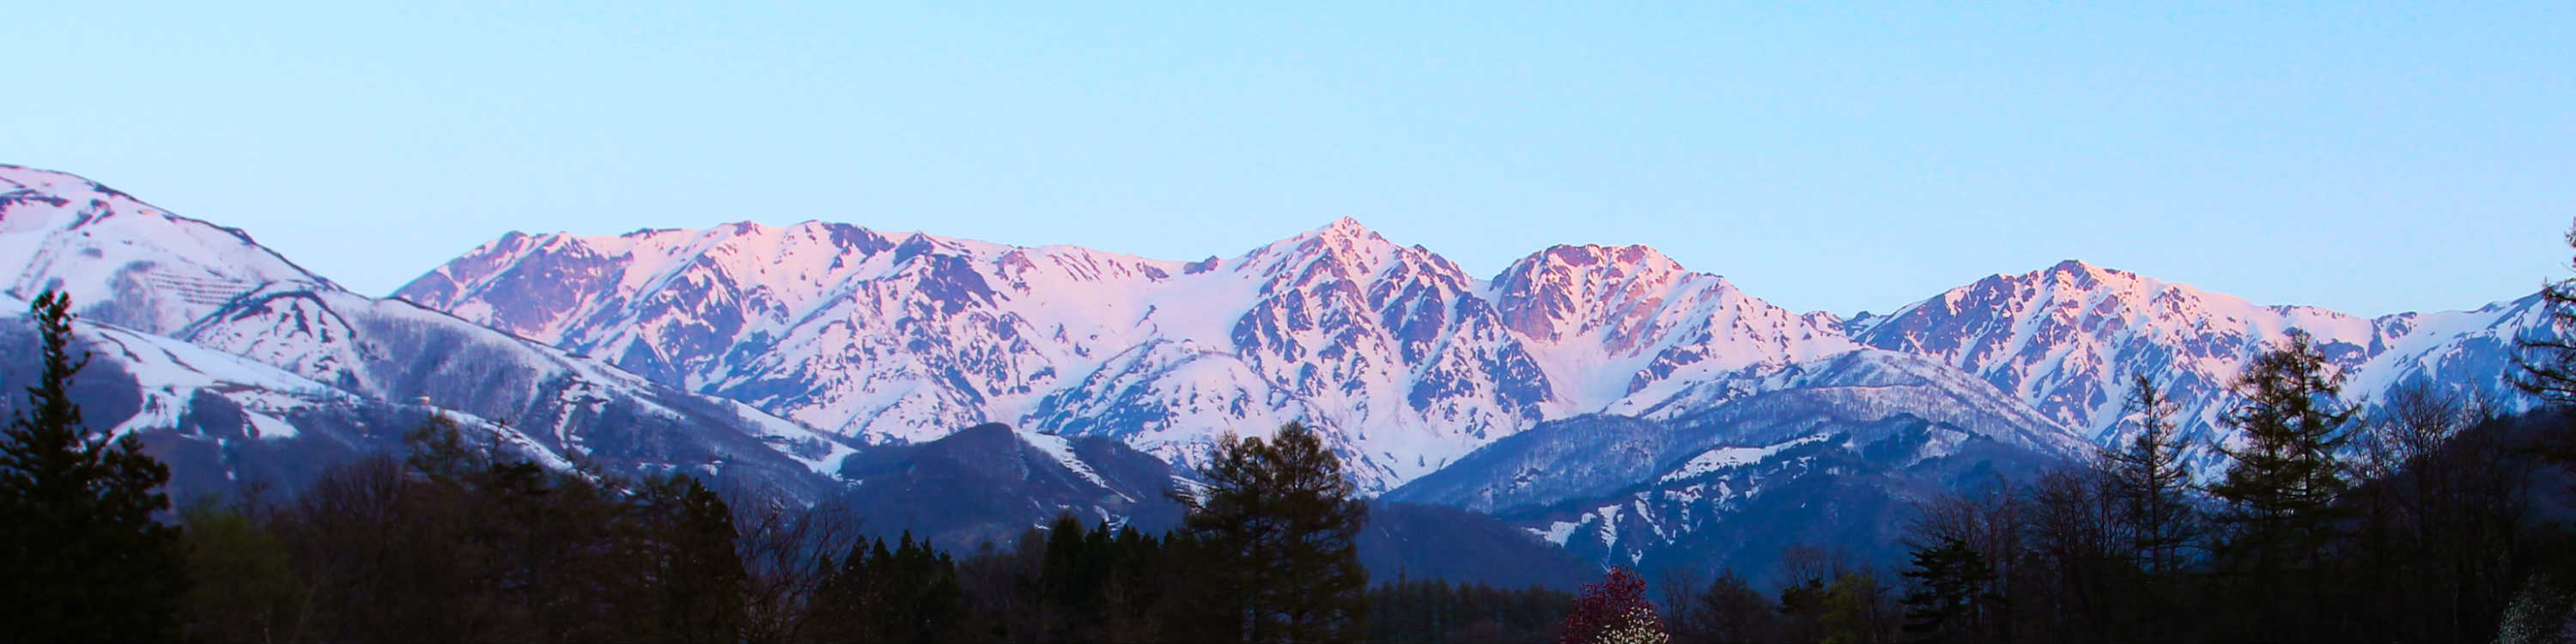 welcome to the hakuba mountains